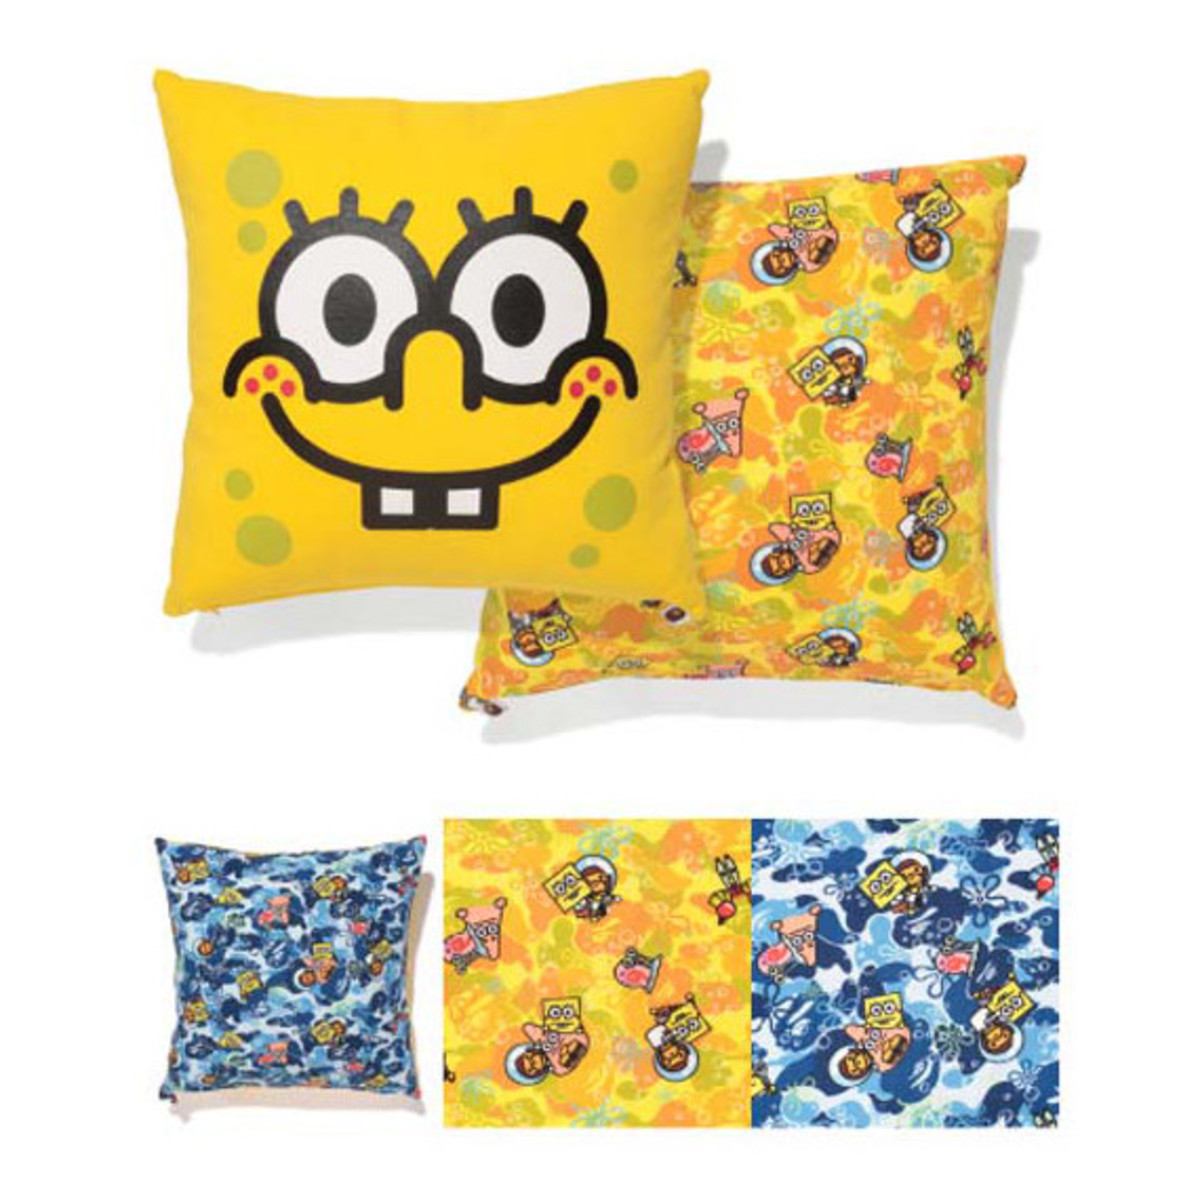 spongebob-squarepants-bathing-ape-capsule-collection-11